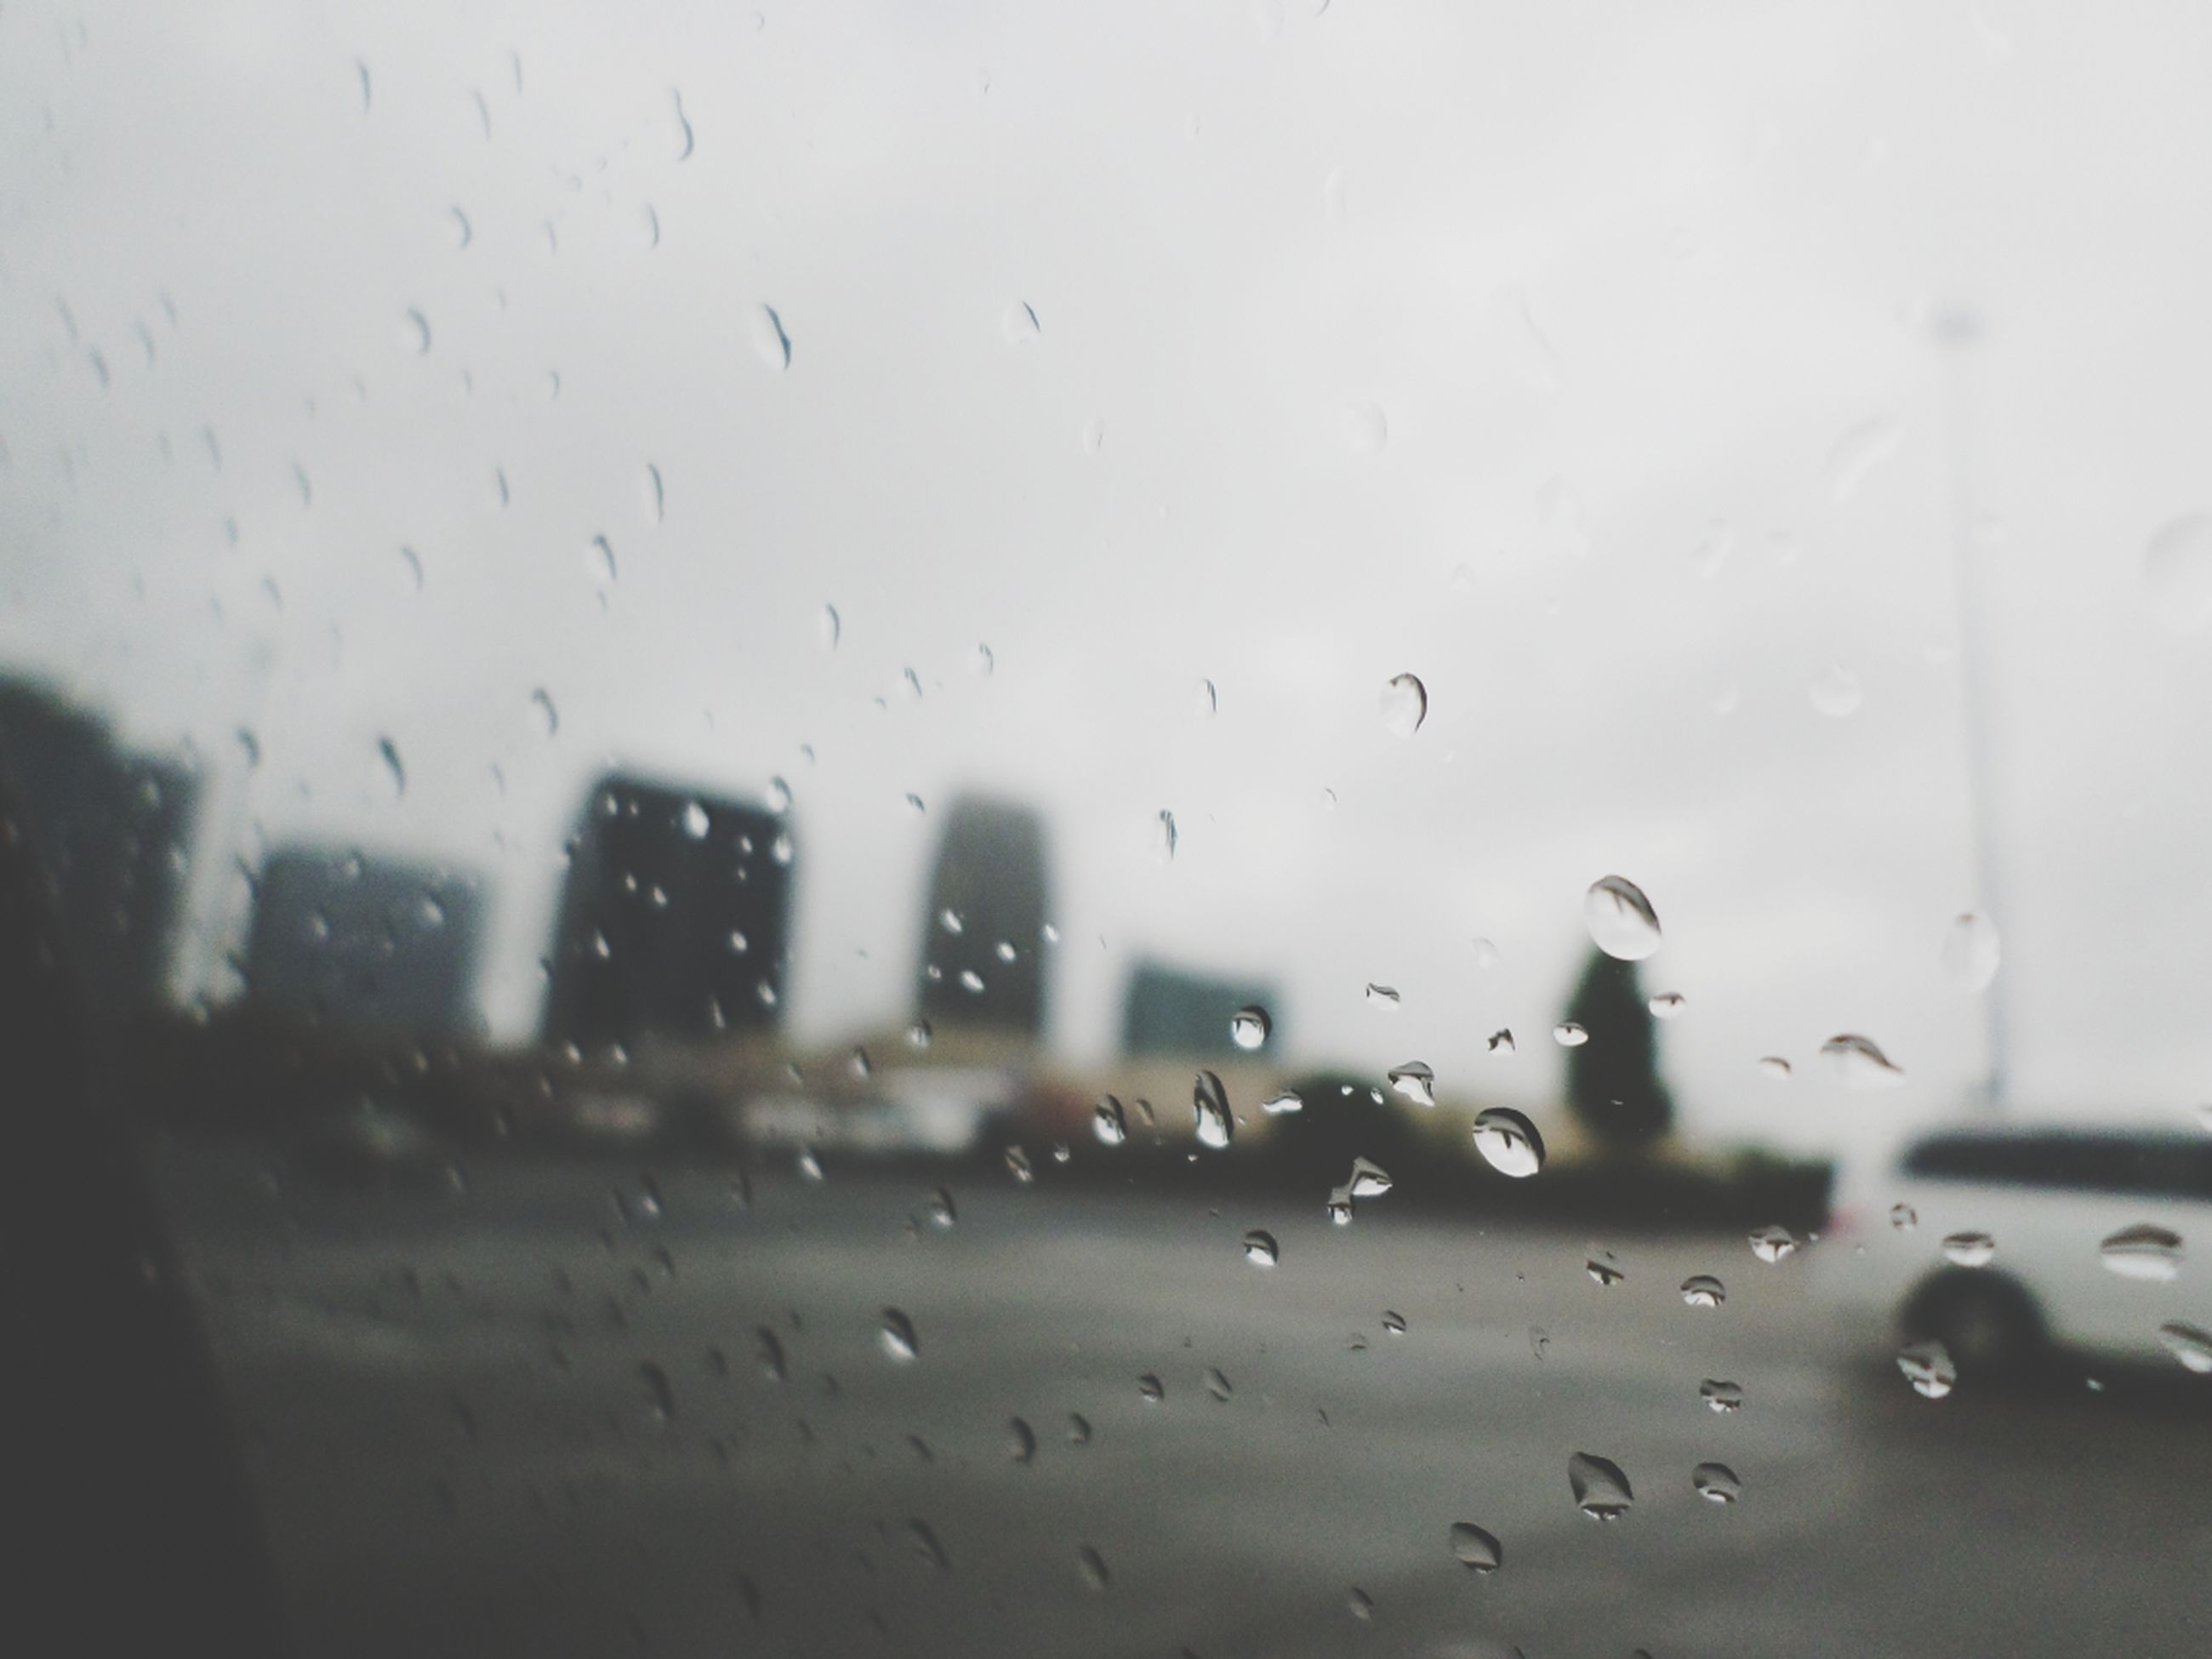 drop, wet, window, rain, indoors, glass - material, transparent, water, weather, raindrop, season, glass, car, built structure, transportation, monsoon, focus on foreground, architecture, sky, no people